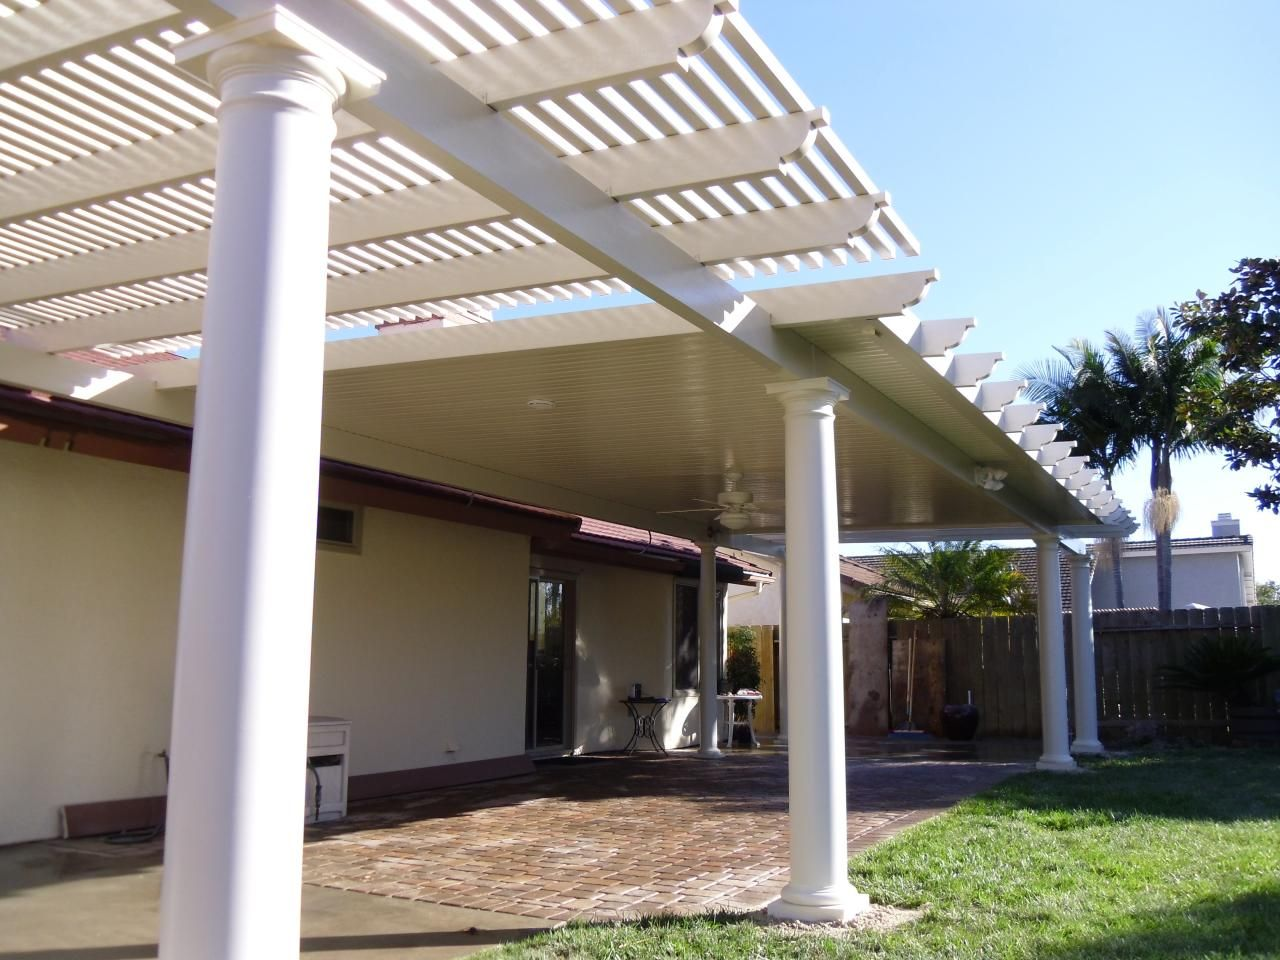 Delta Pacific Builders Built This Combination Solid And Lattice Patio Cover  In Brentwood. | Pools | Pinterest | Lattice Patio And Patios